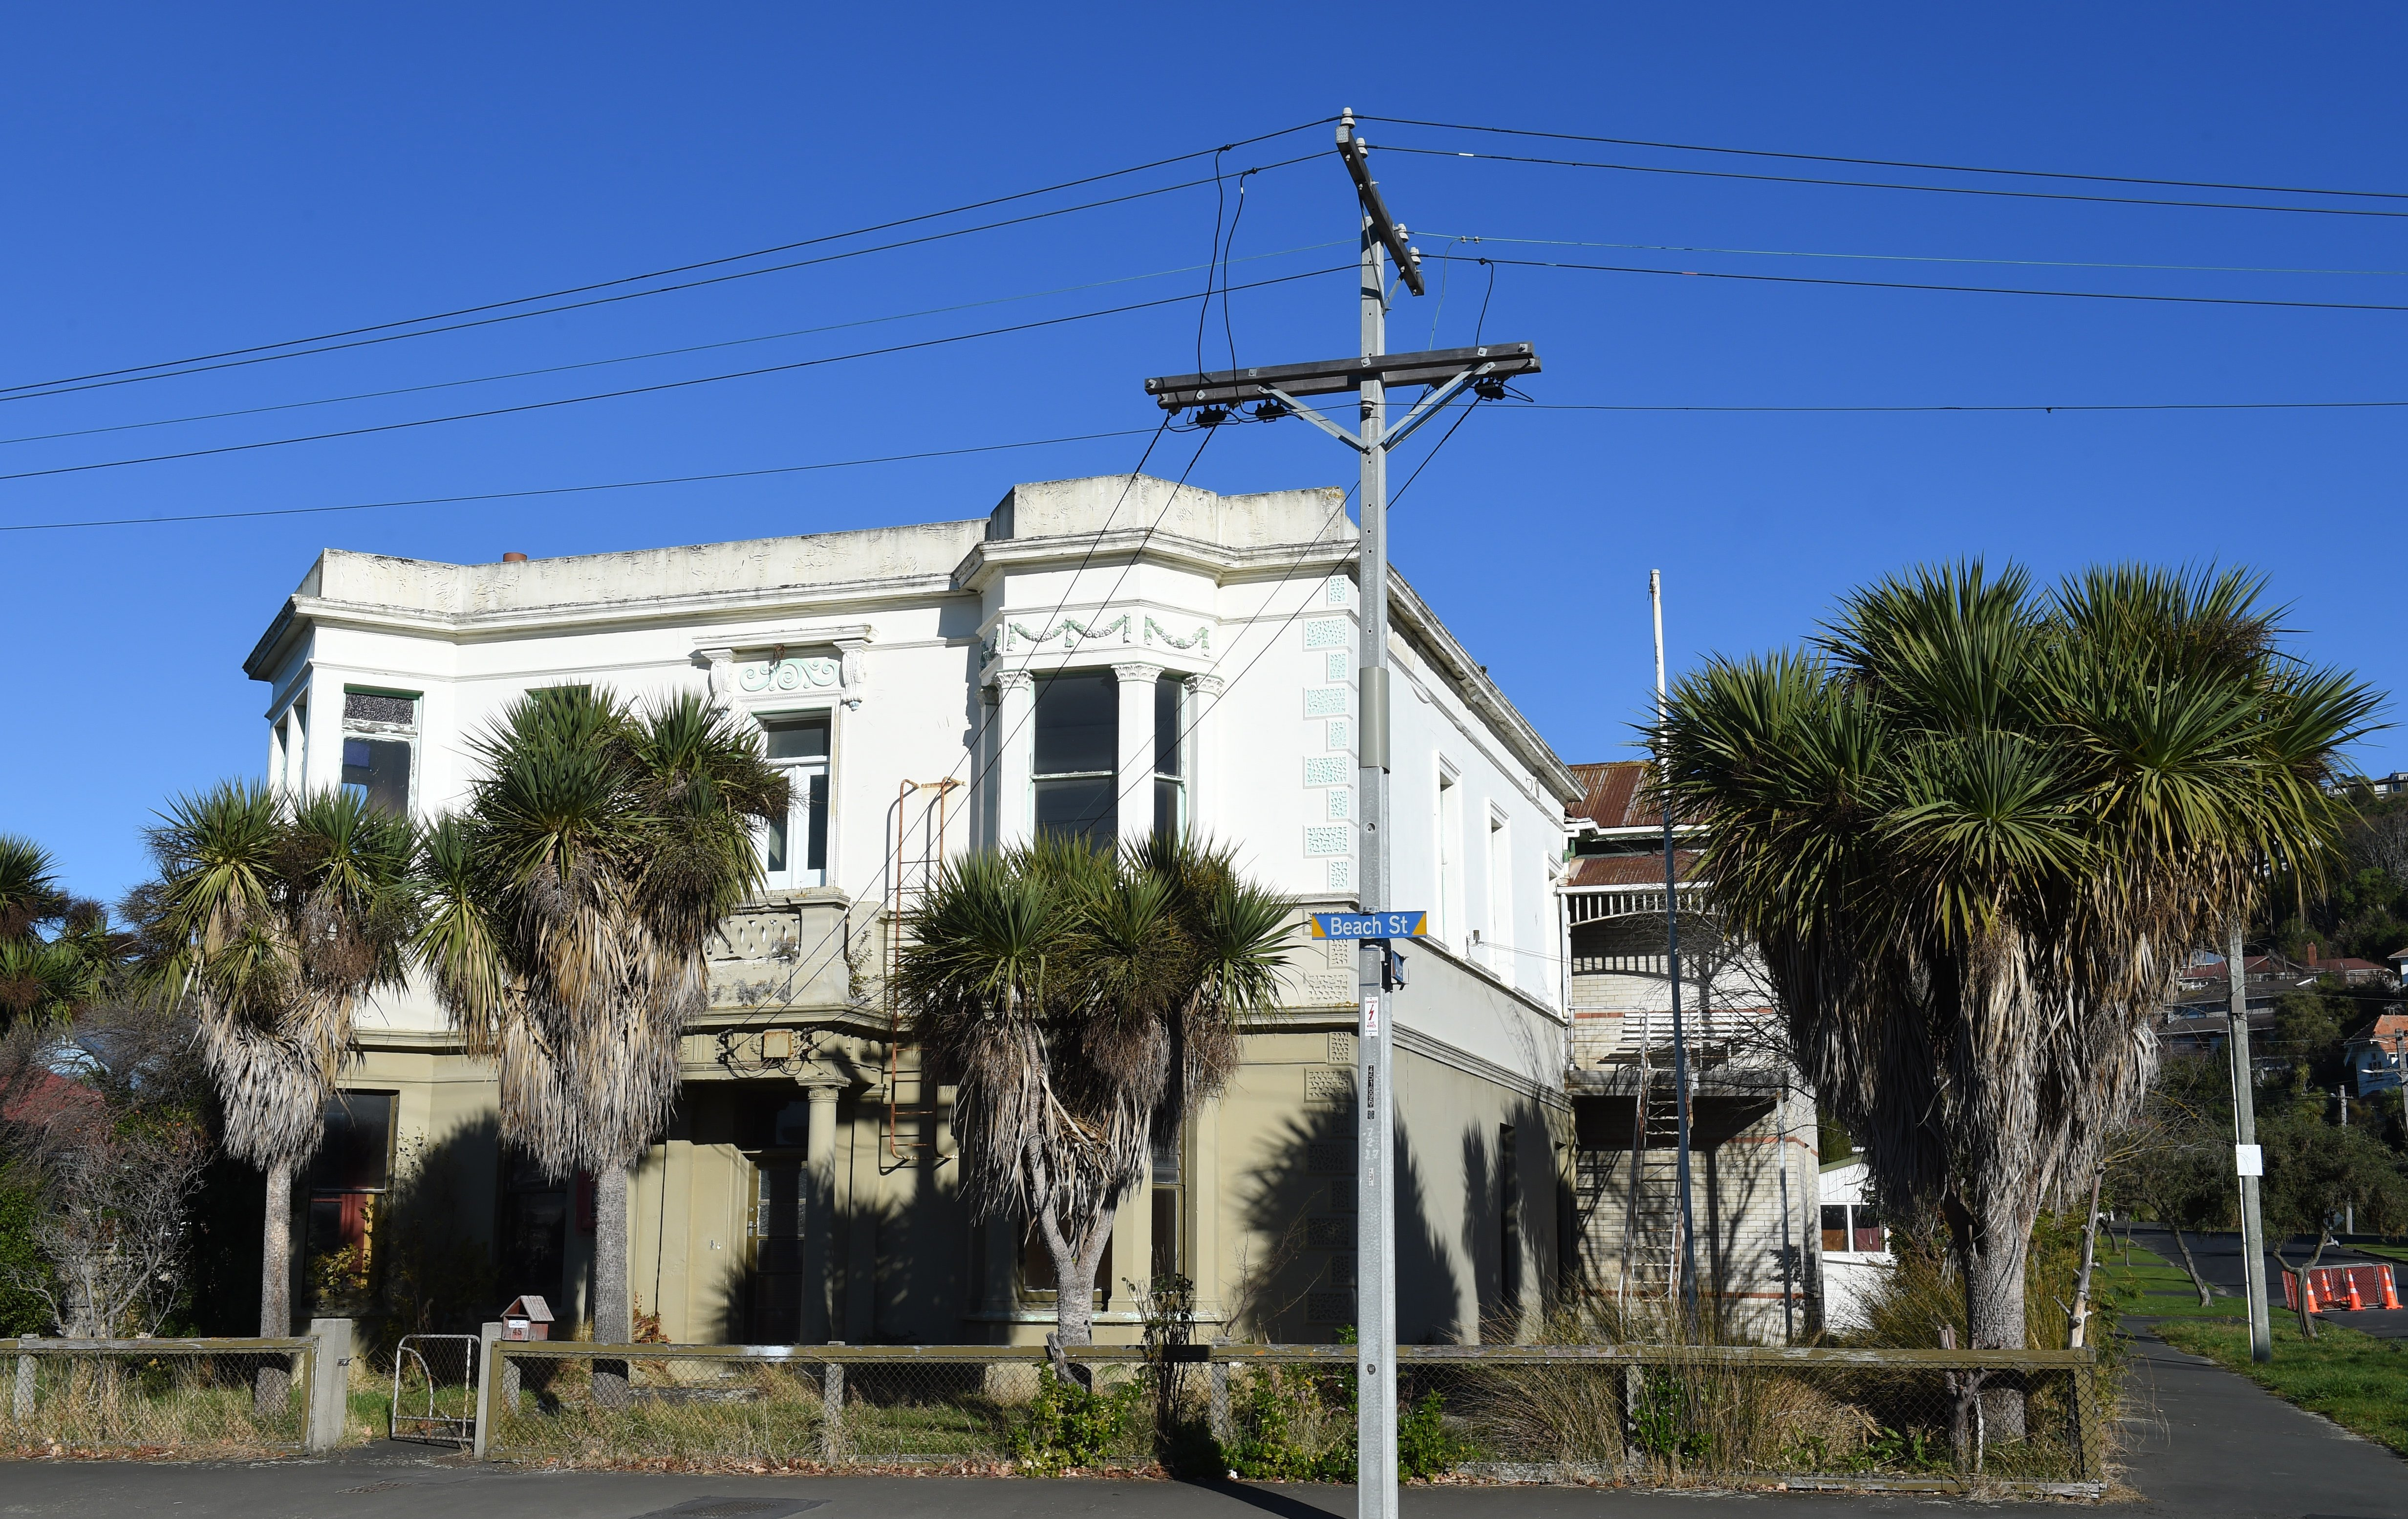 Cabbage trees/ti kouka give this property in Beach St, St Clair in interesting Spanish-American...